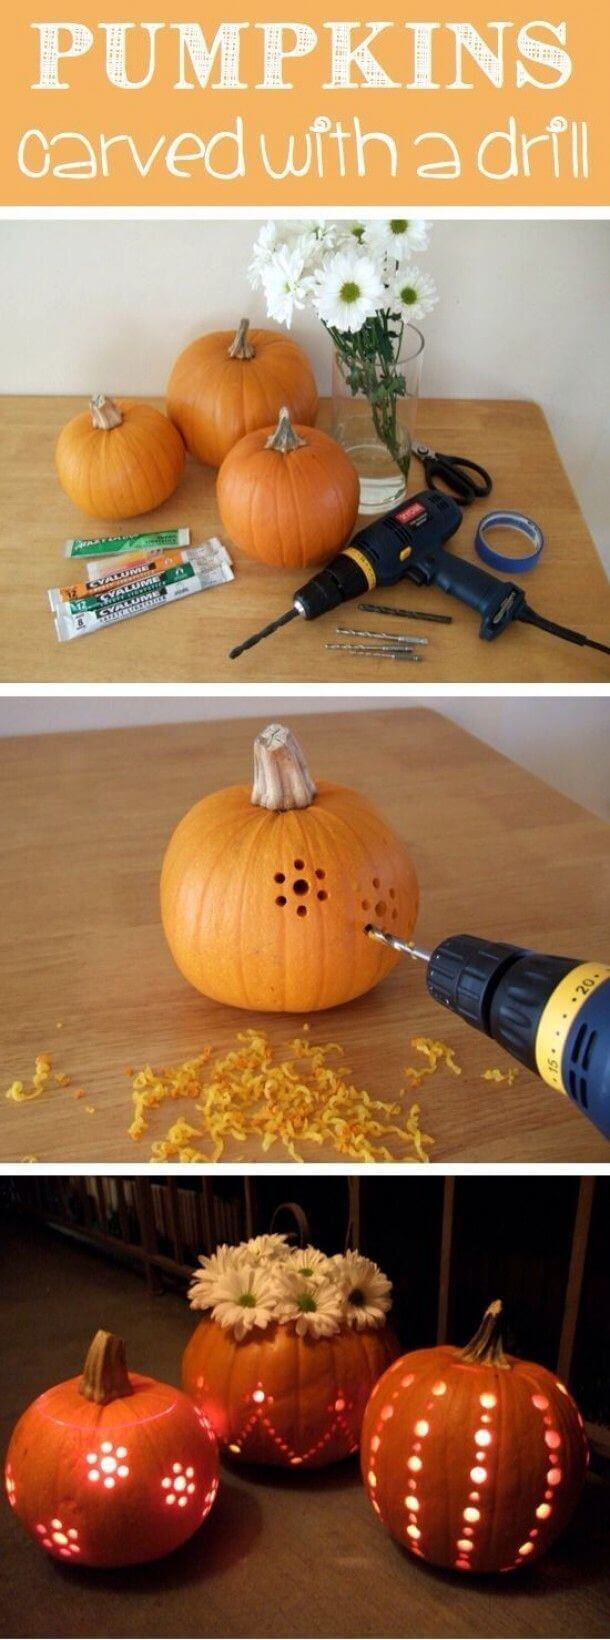 DIY Pumpkin Carving Ideas: Carve Your Pumpkins With A Drill